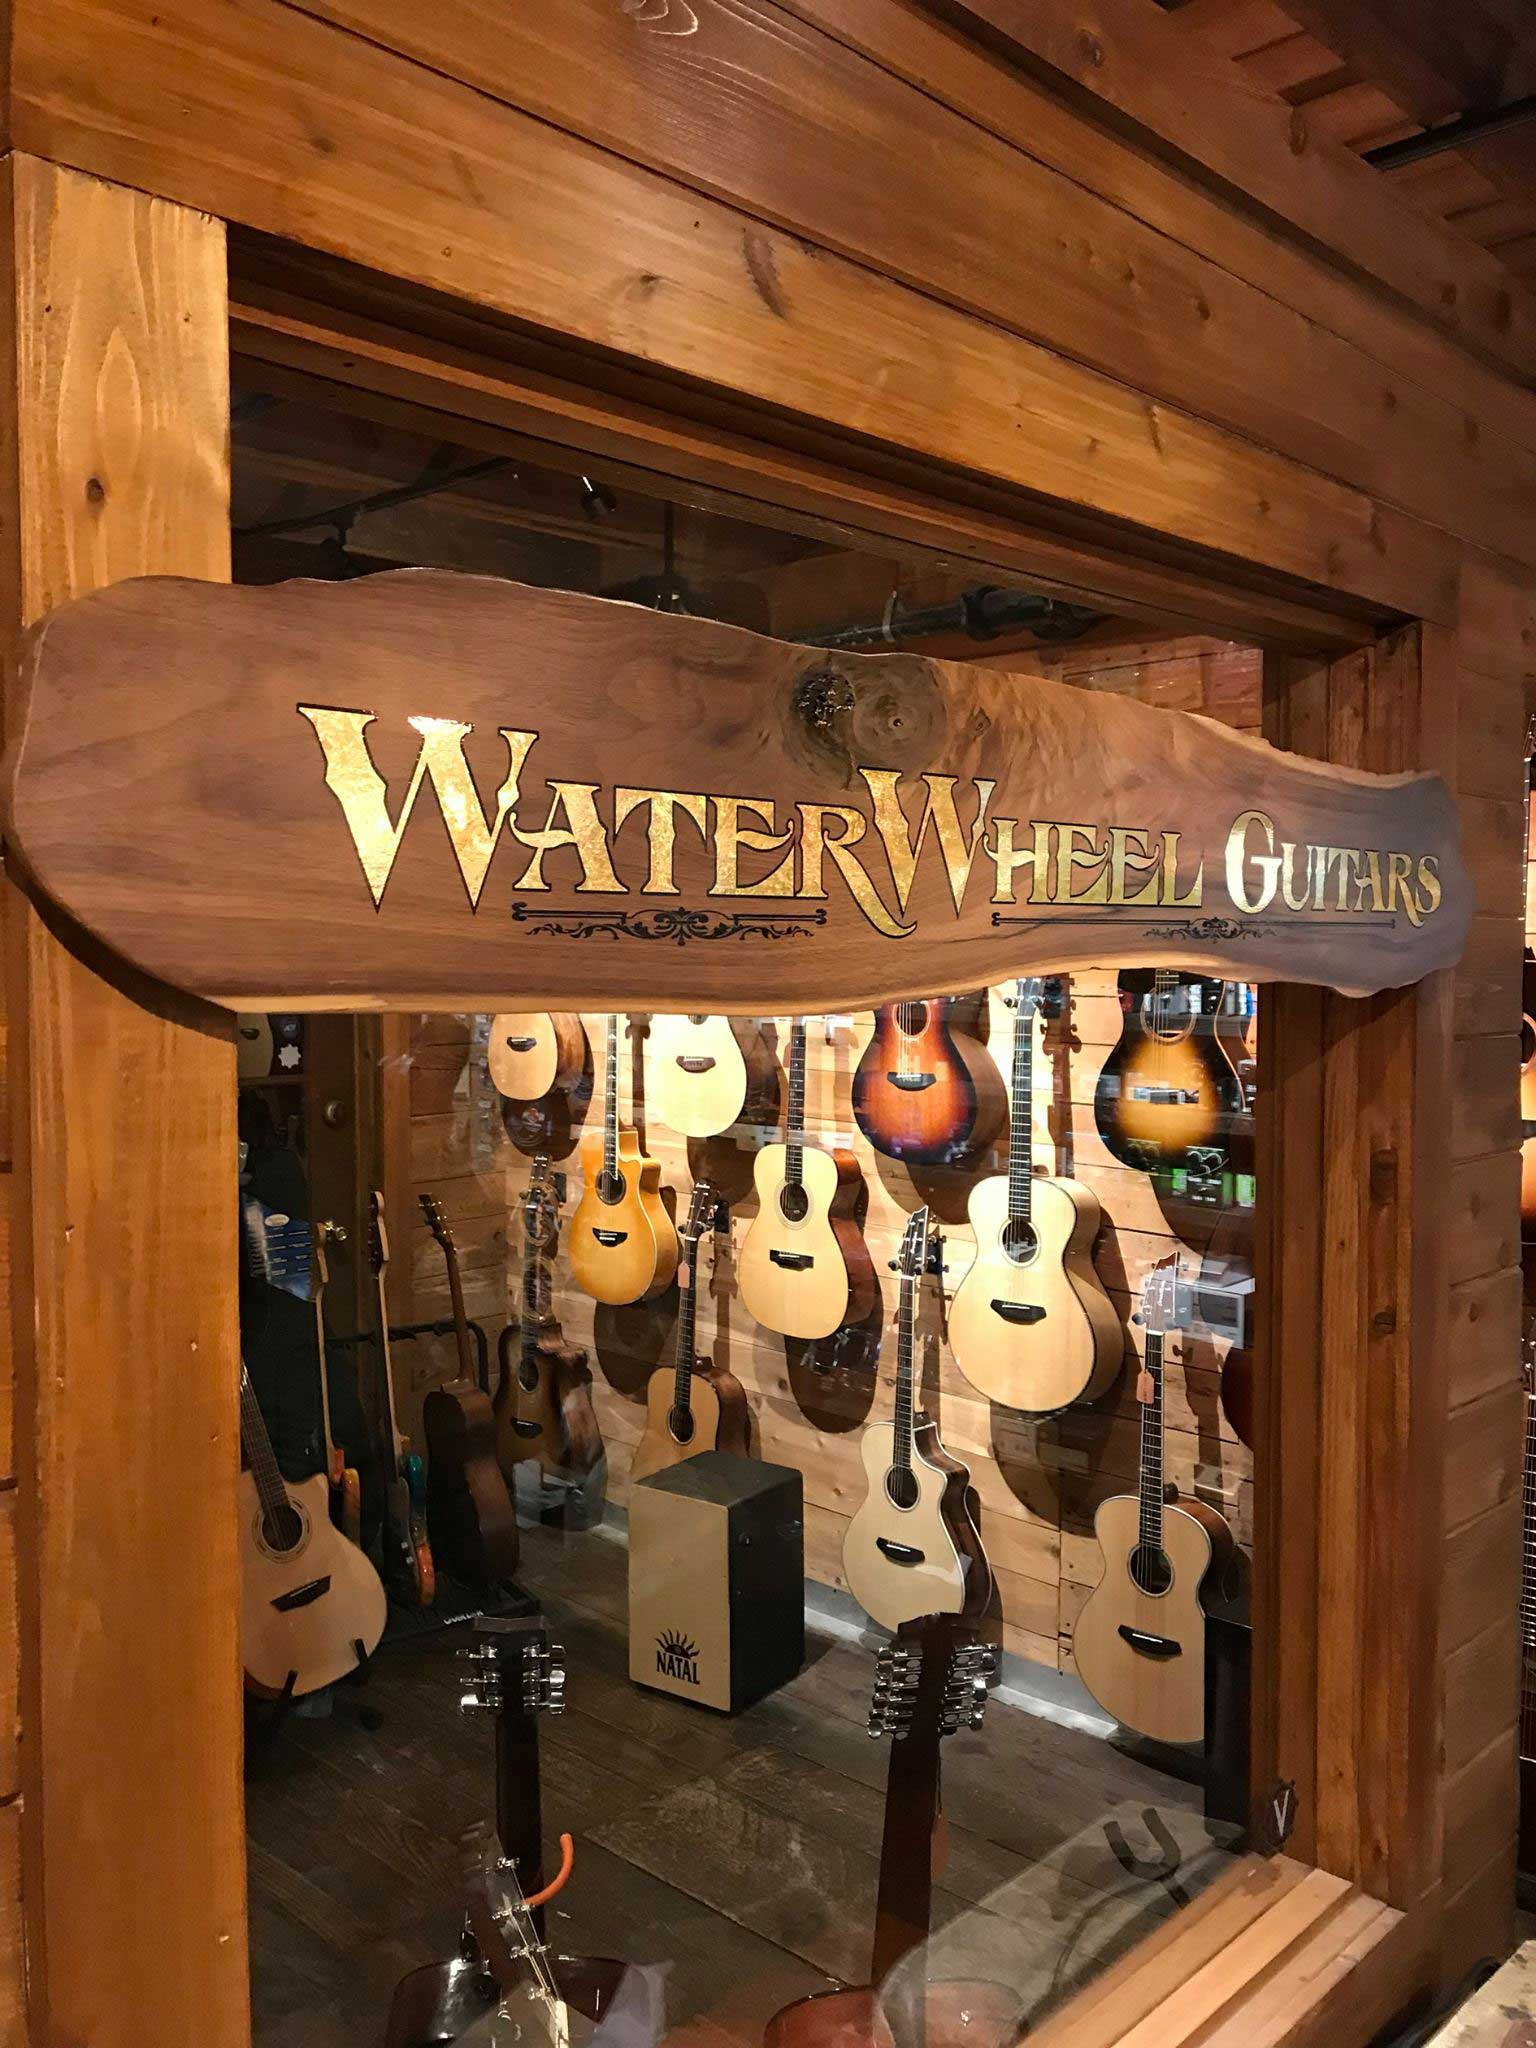 water wheel guitar sign in a window with guitars hanging on a wall behind it